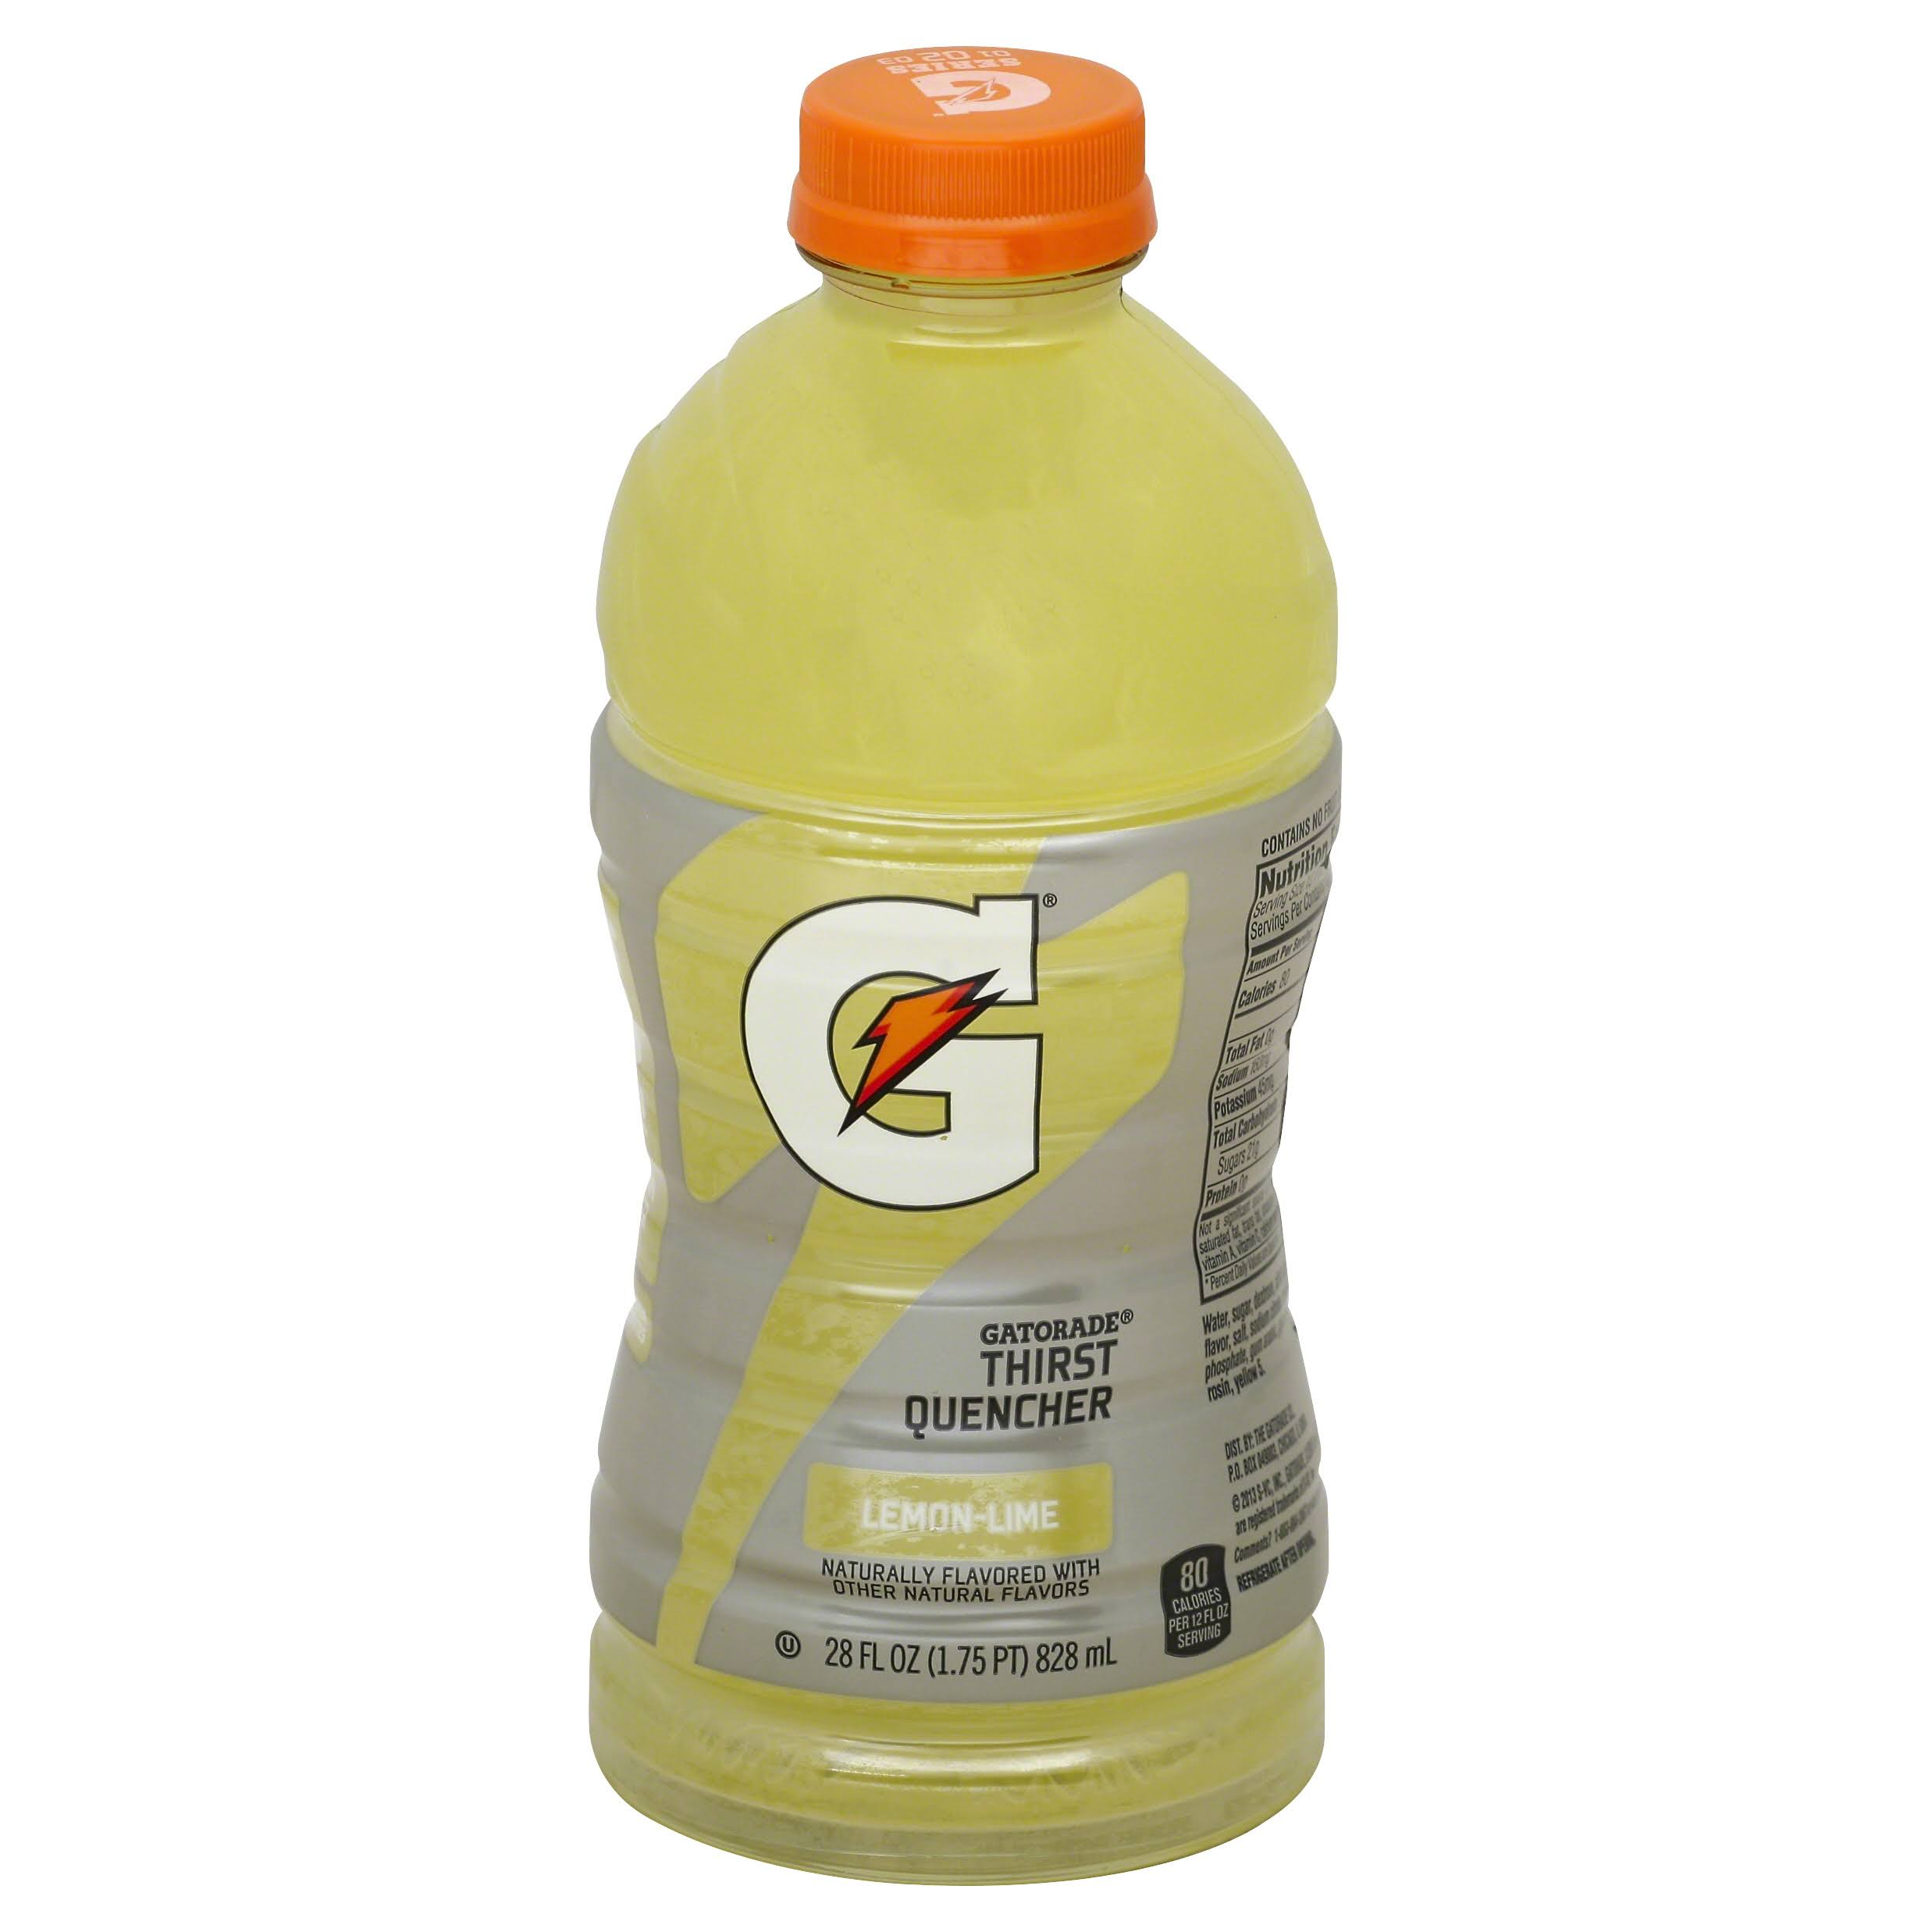 Gatorade G Series Thirst Quencher, 02 Perform, Lemon-Lime - 28 fl oz